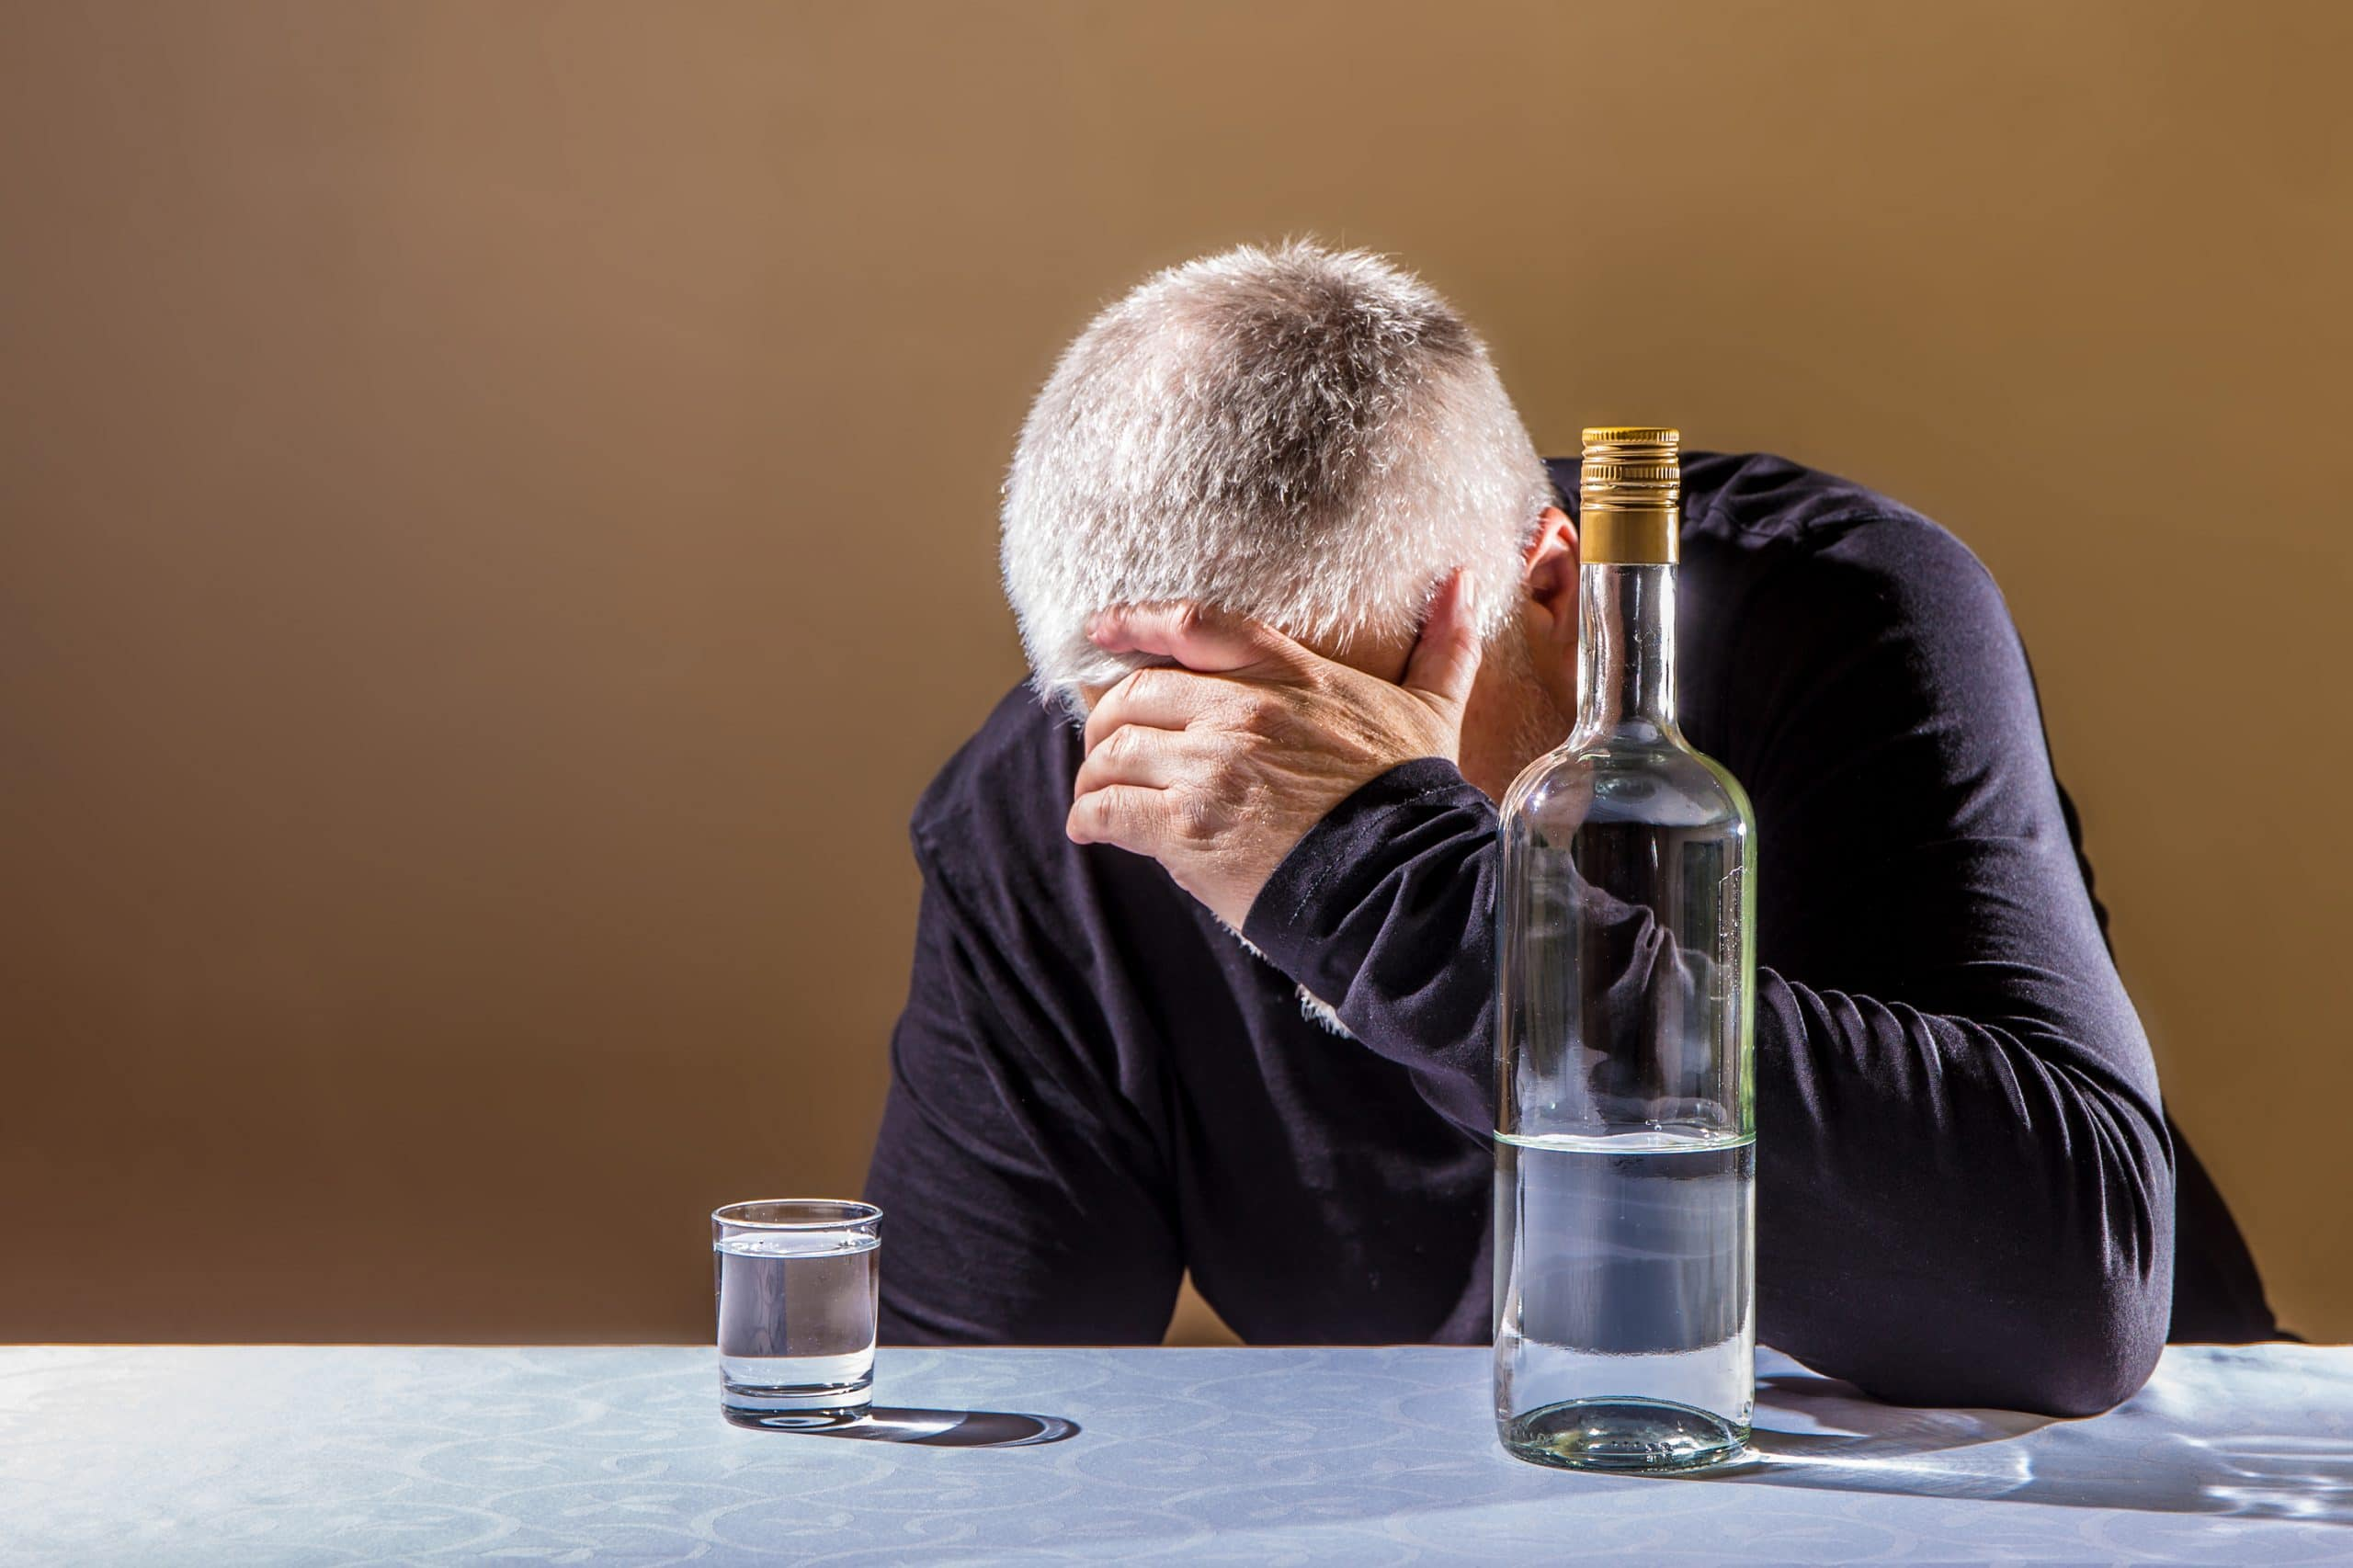 Thumnail photo of 1 in 10 Older Americans Indulge in Binge Drinking According To Study